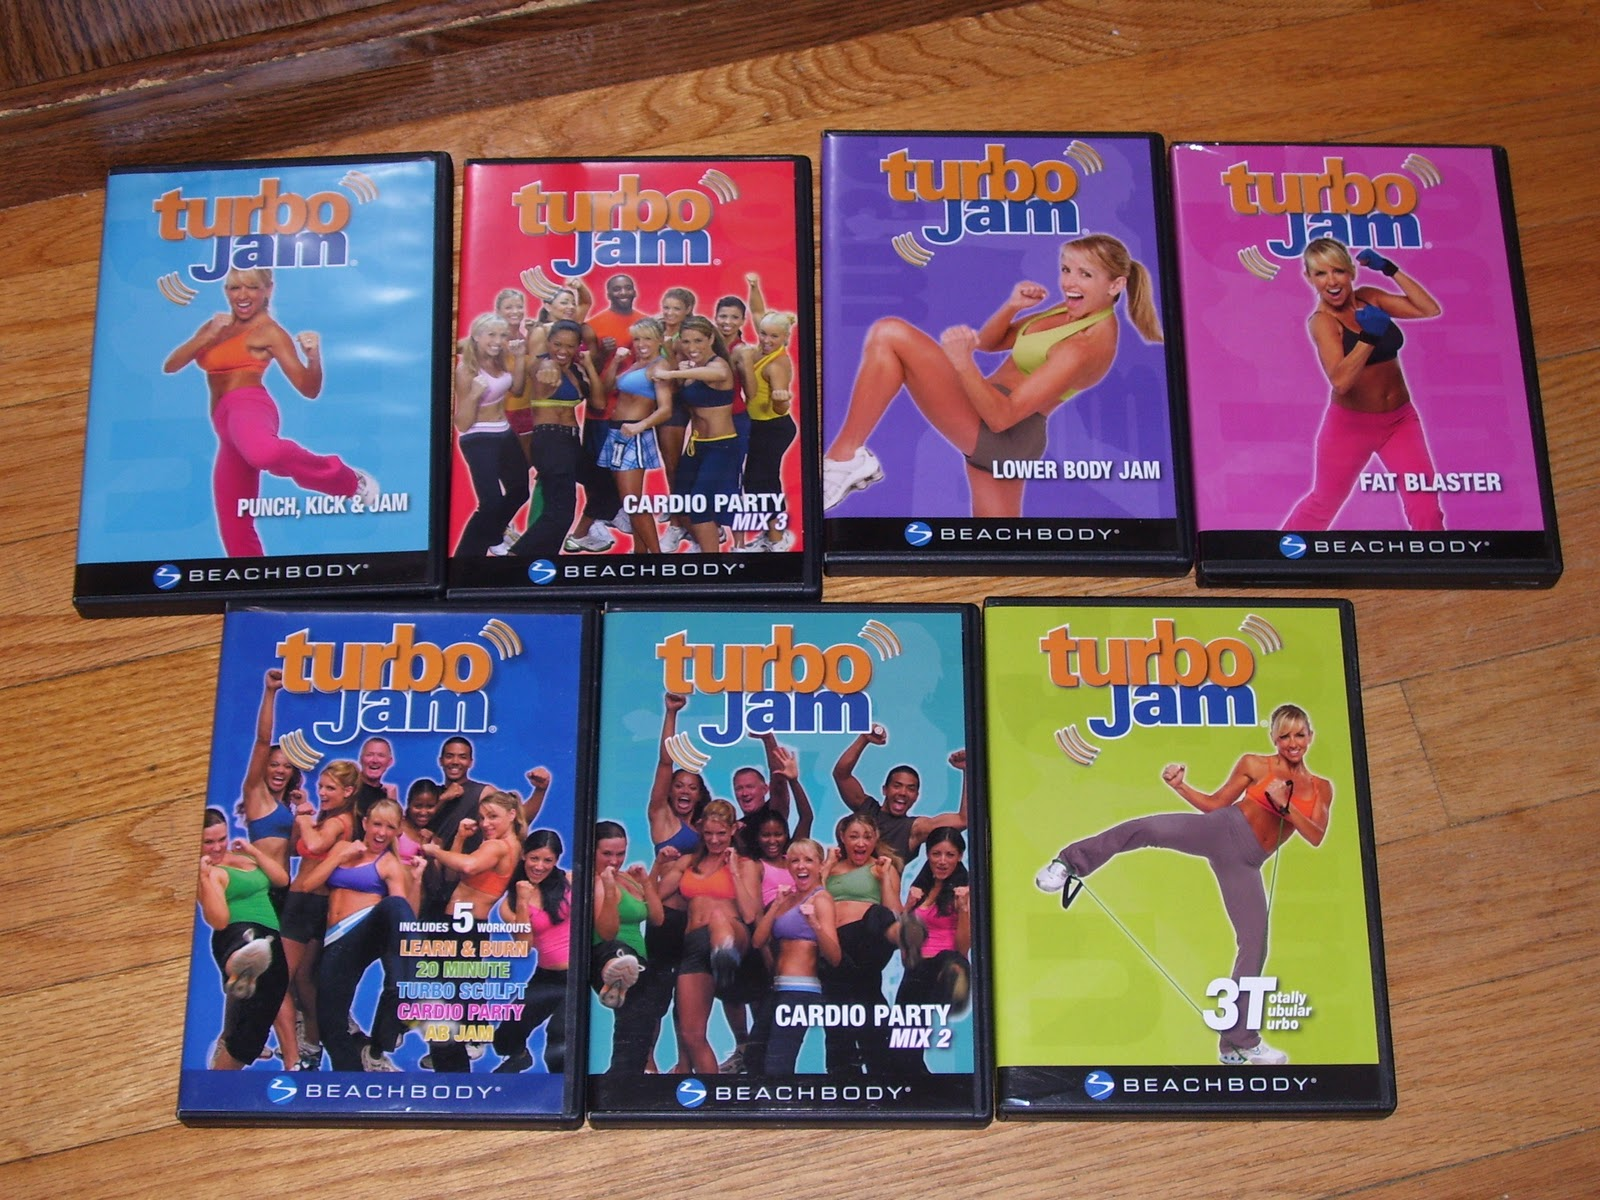 ... me. I LOVE turbo jam because almost every move engages your core